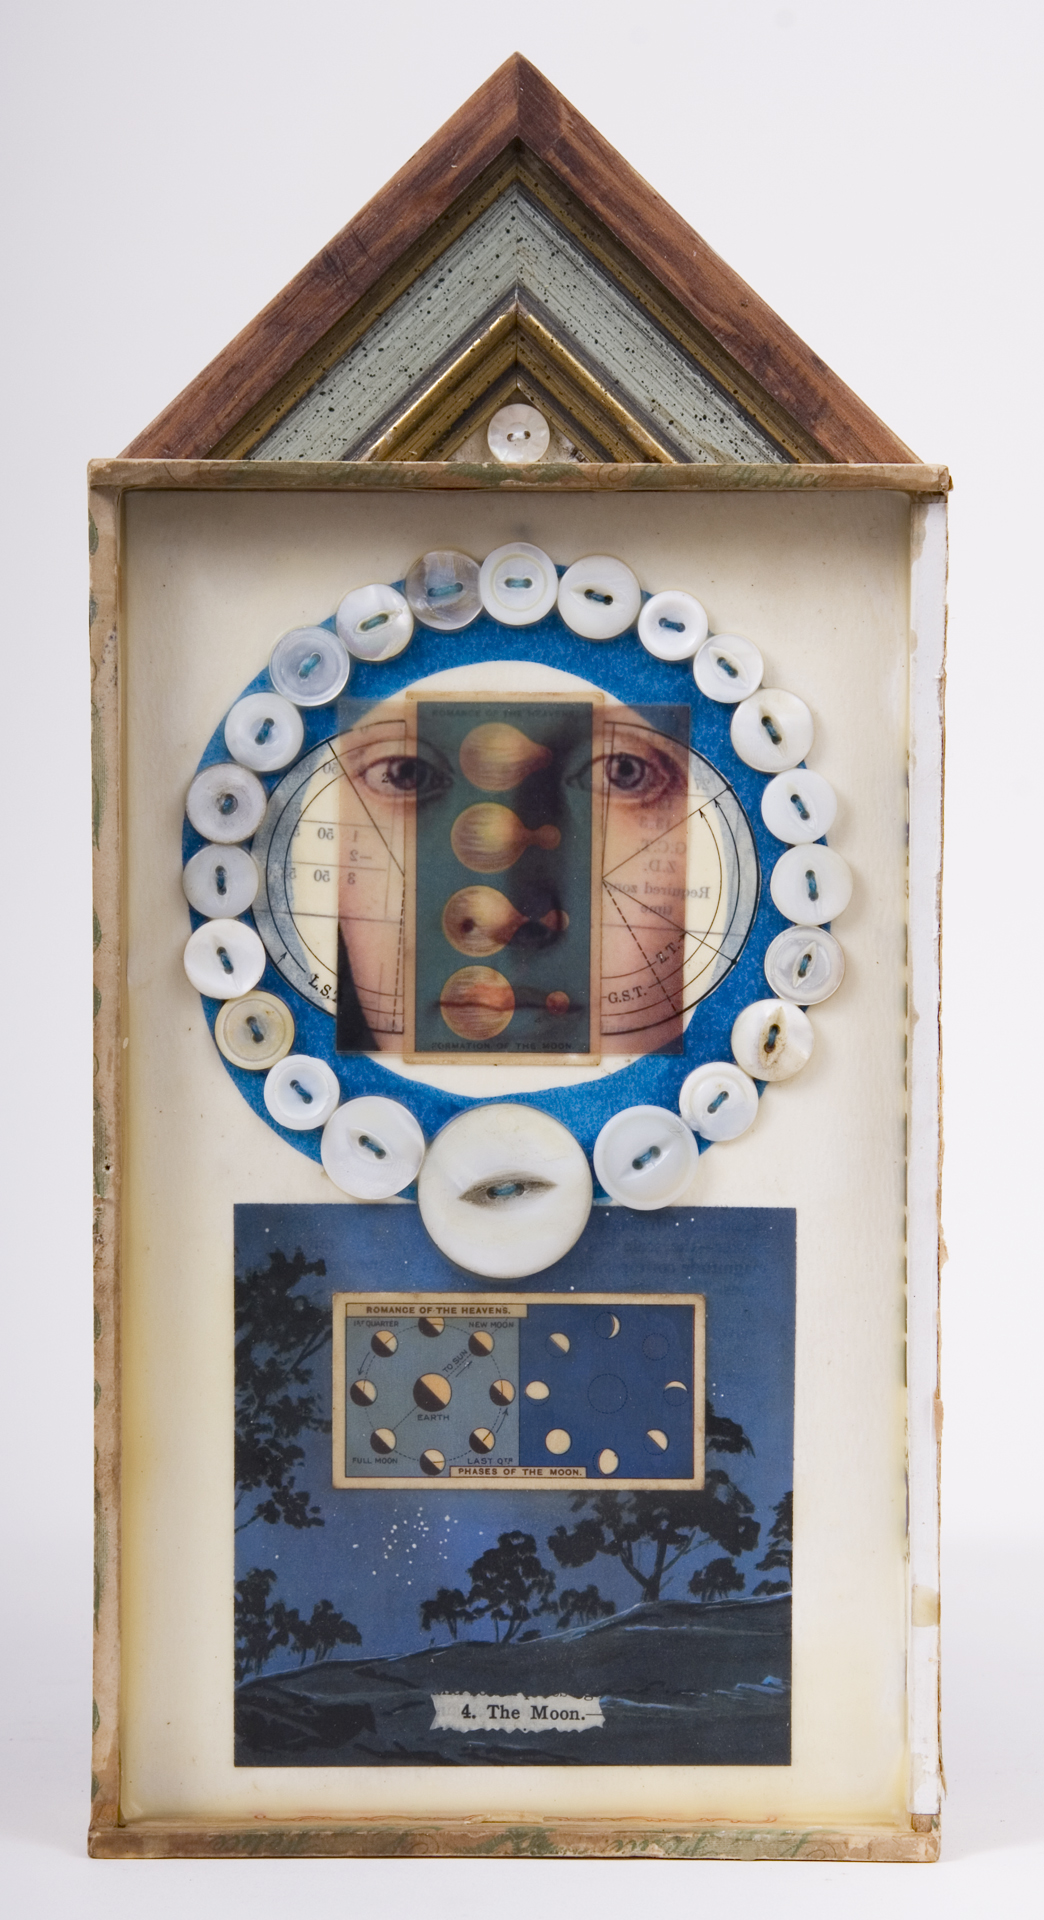 """4. The Moon\""